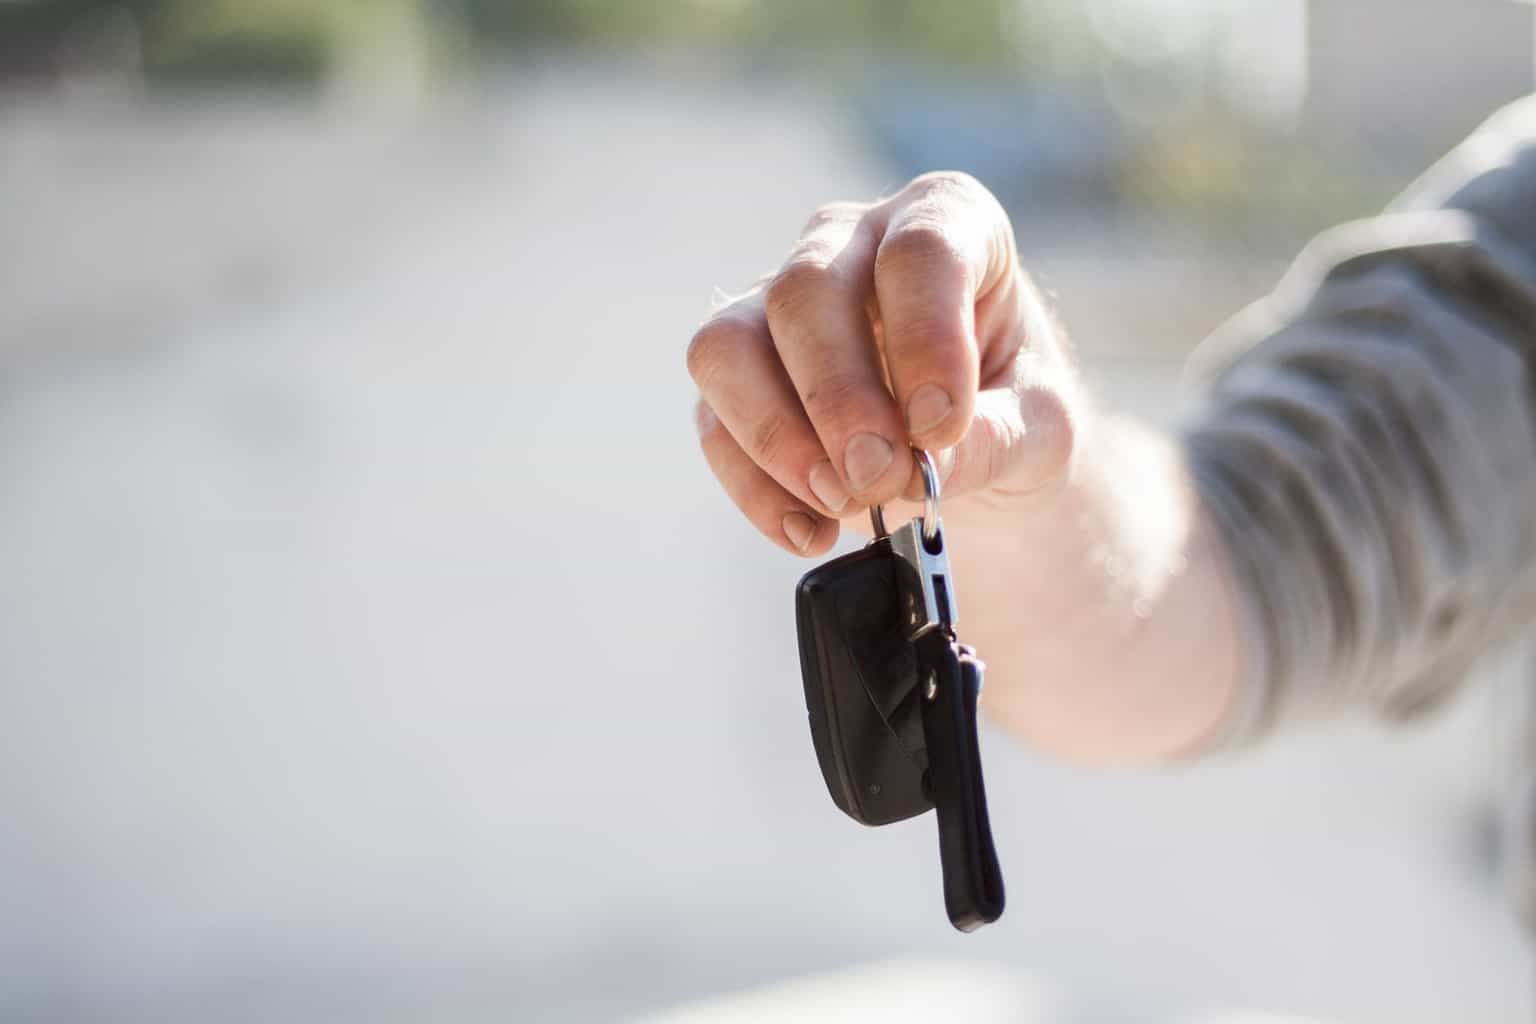 What is the best way to fund your next car?